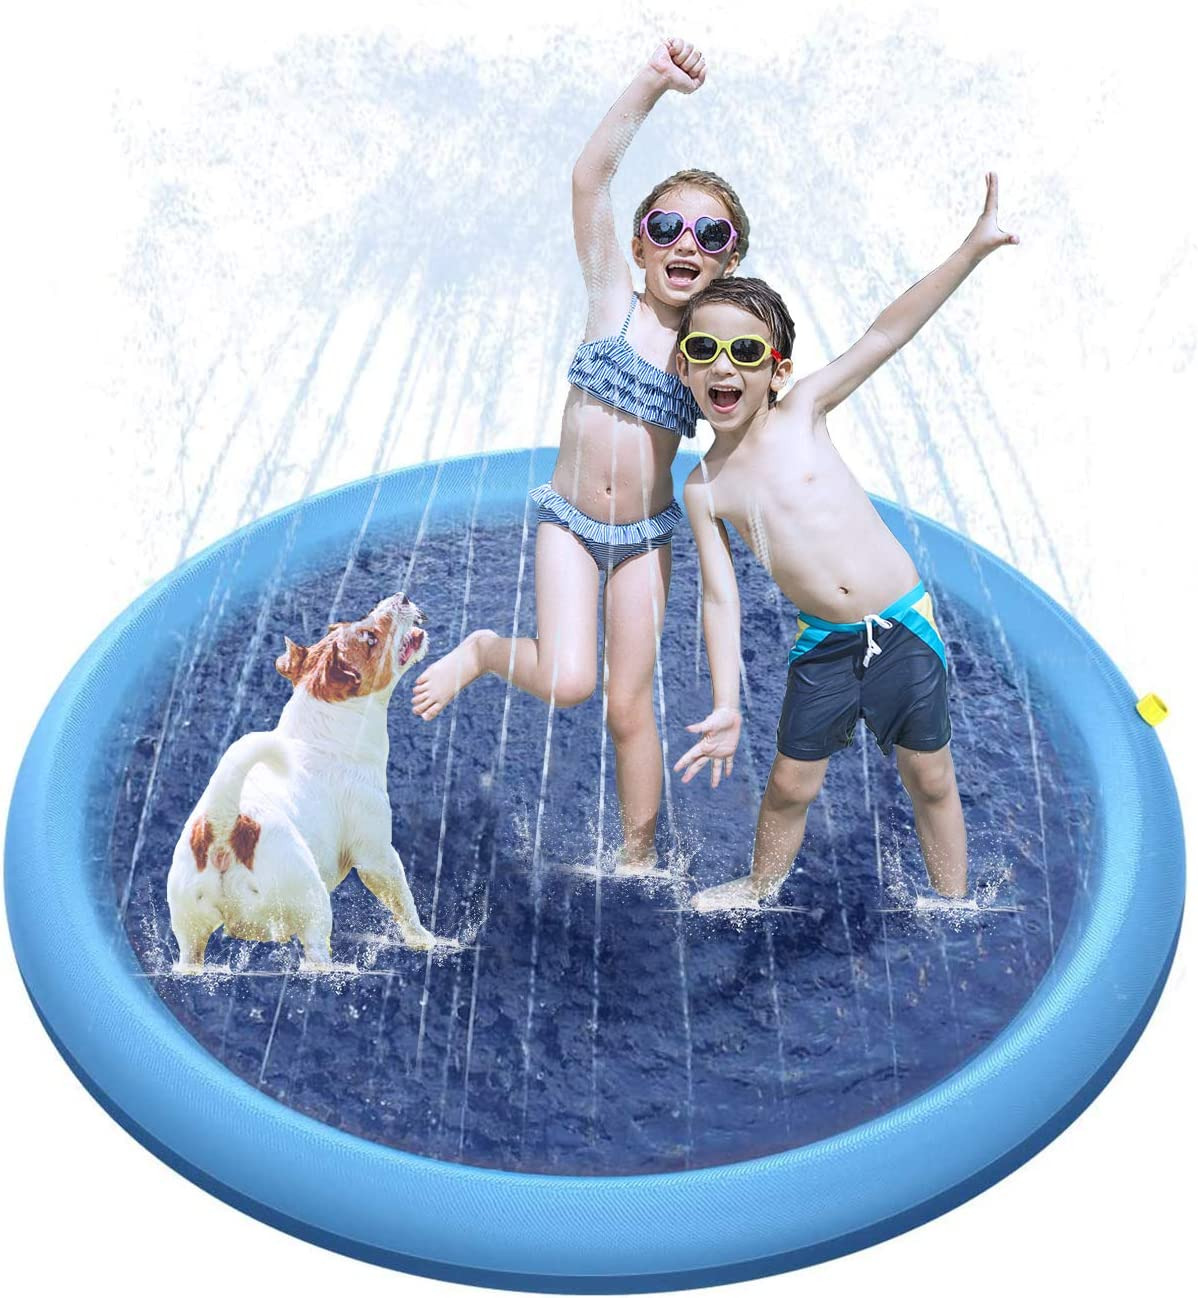 "Procity Splash Sprinkler Pad for Dogs Kids, 59"" Thickened Durable Pet Dog Bath Pool Summer Outdoor Water Toys Sprinklers Splash Play Mat"